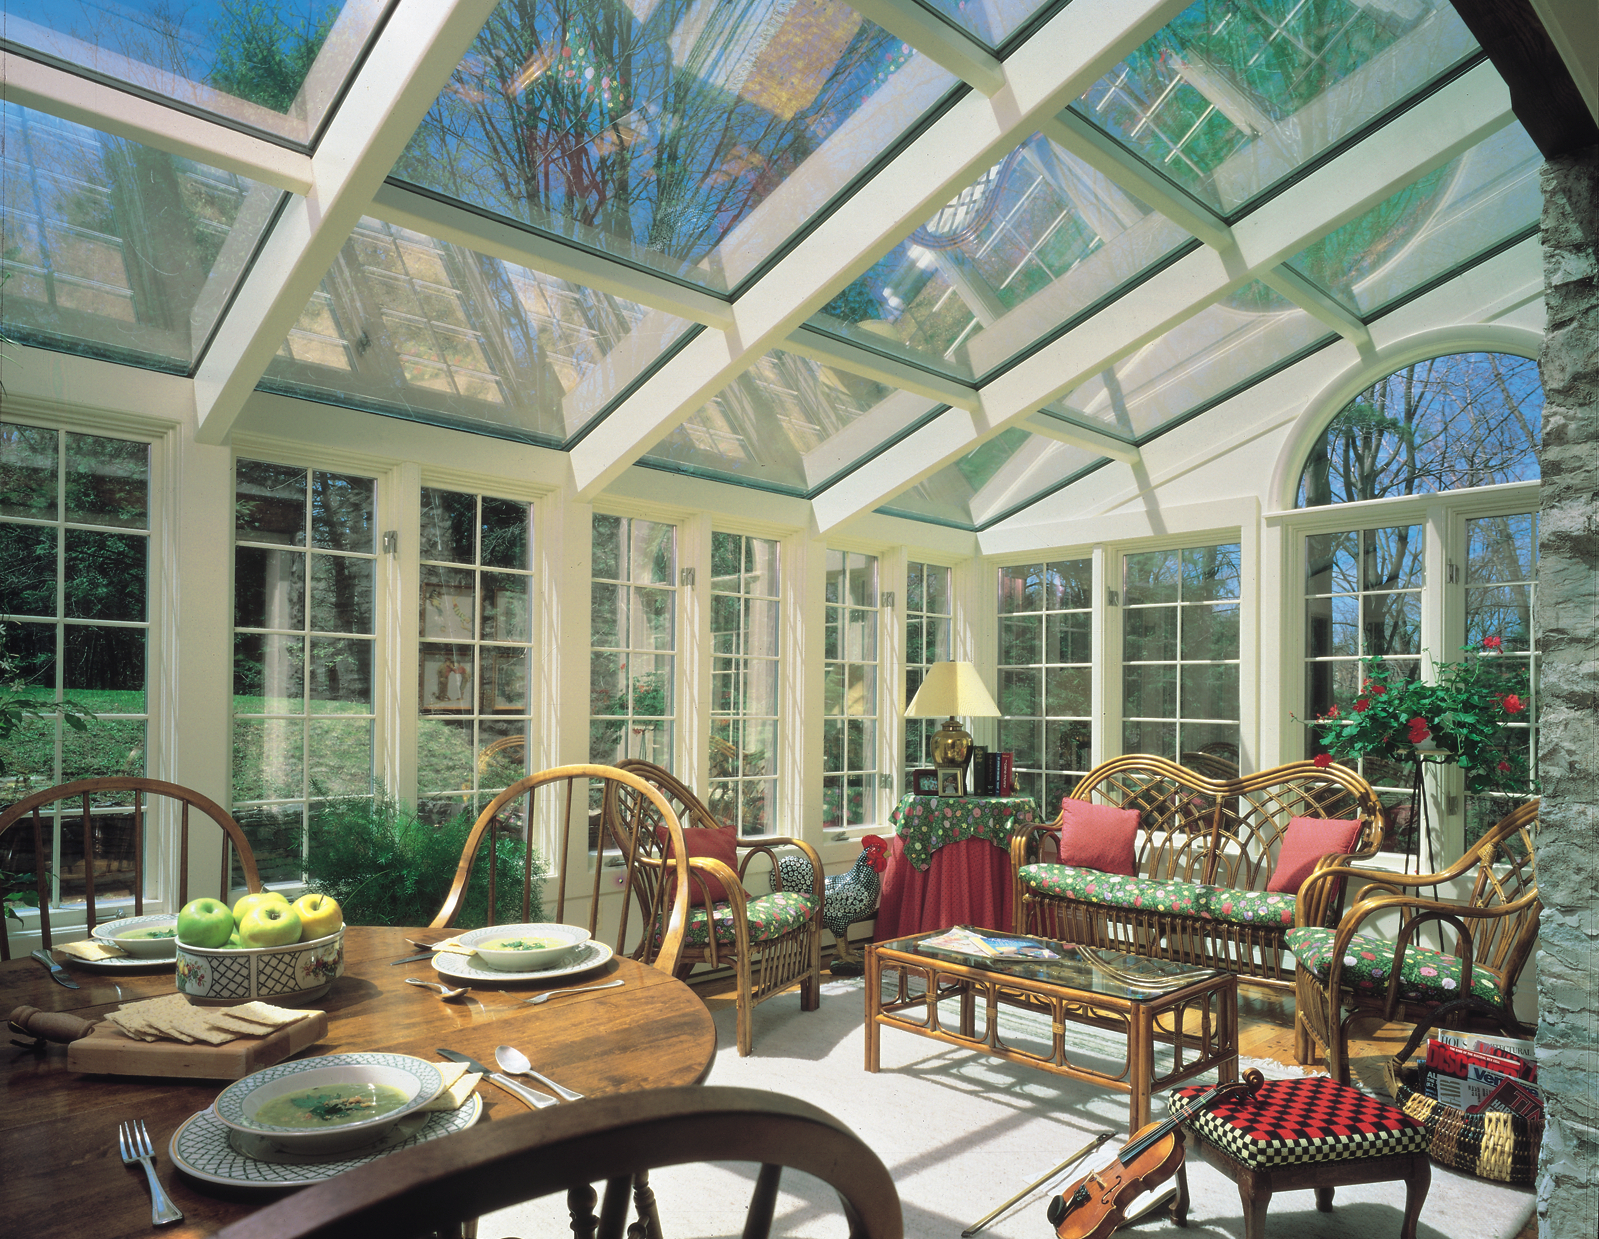 Four seasons sunrooms bondville il 61815 angies list for 4 season room